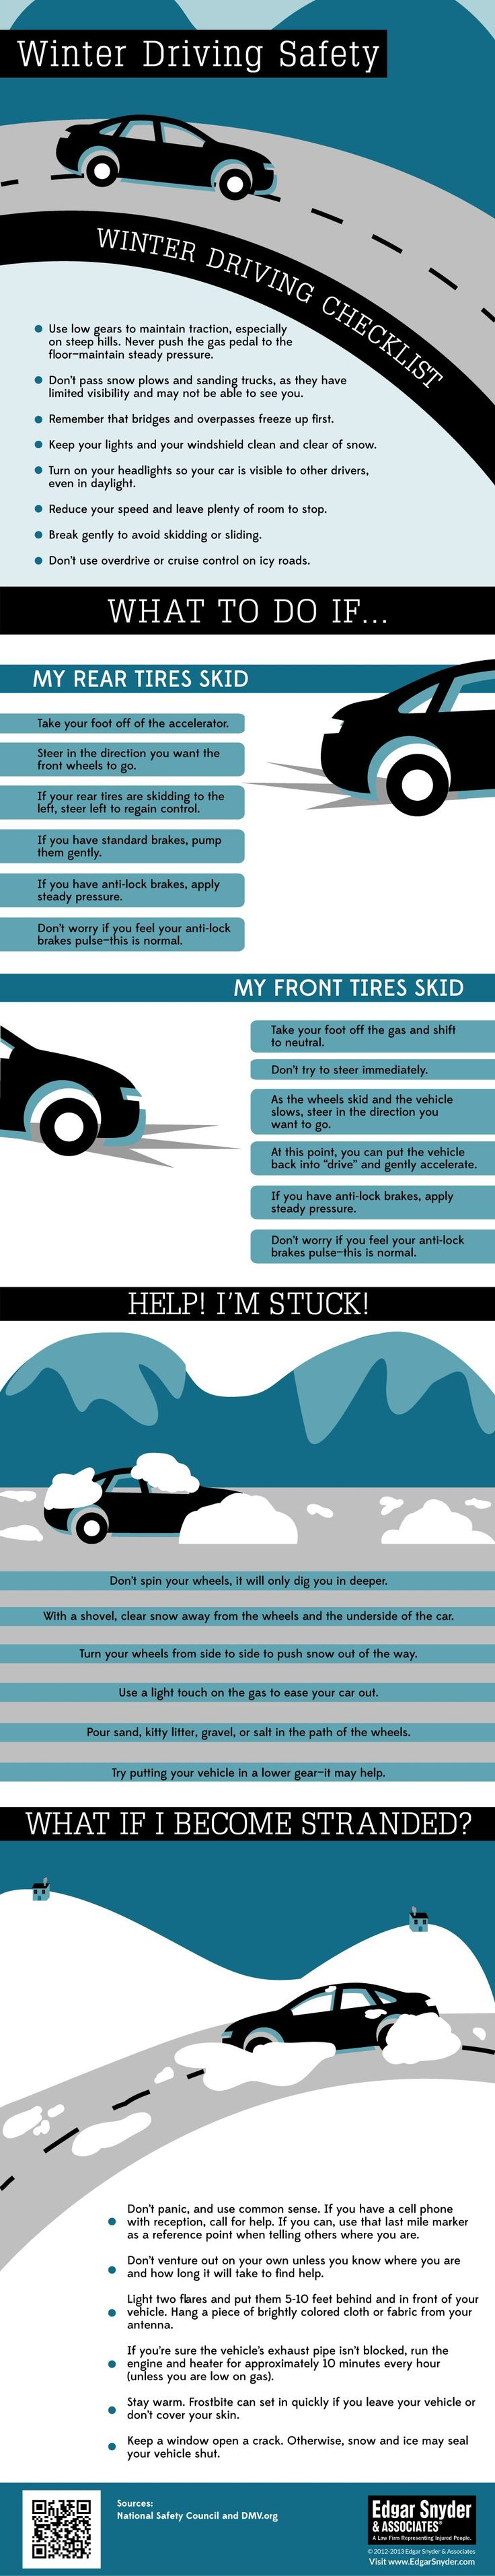 For more on winter driving, click on the picture for some helpful tips.